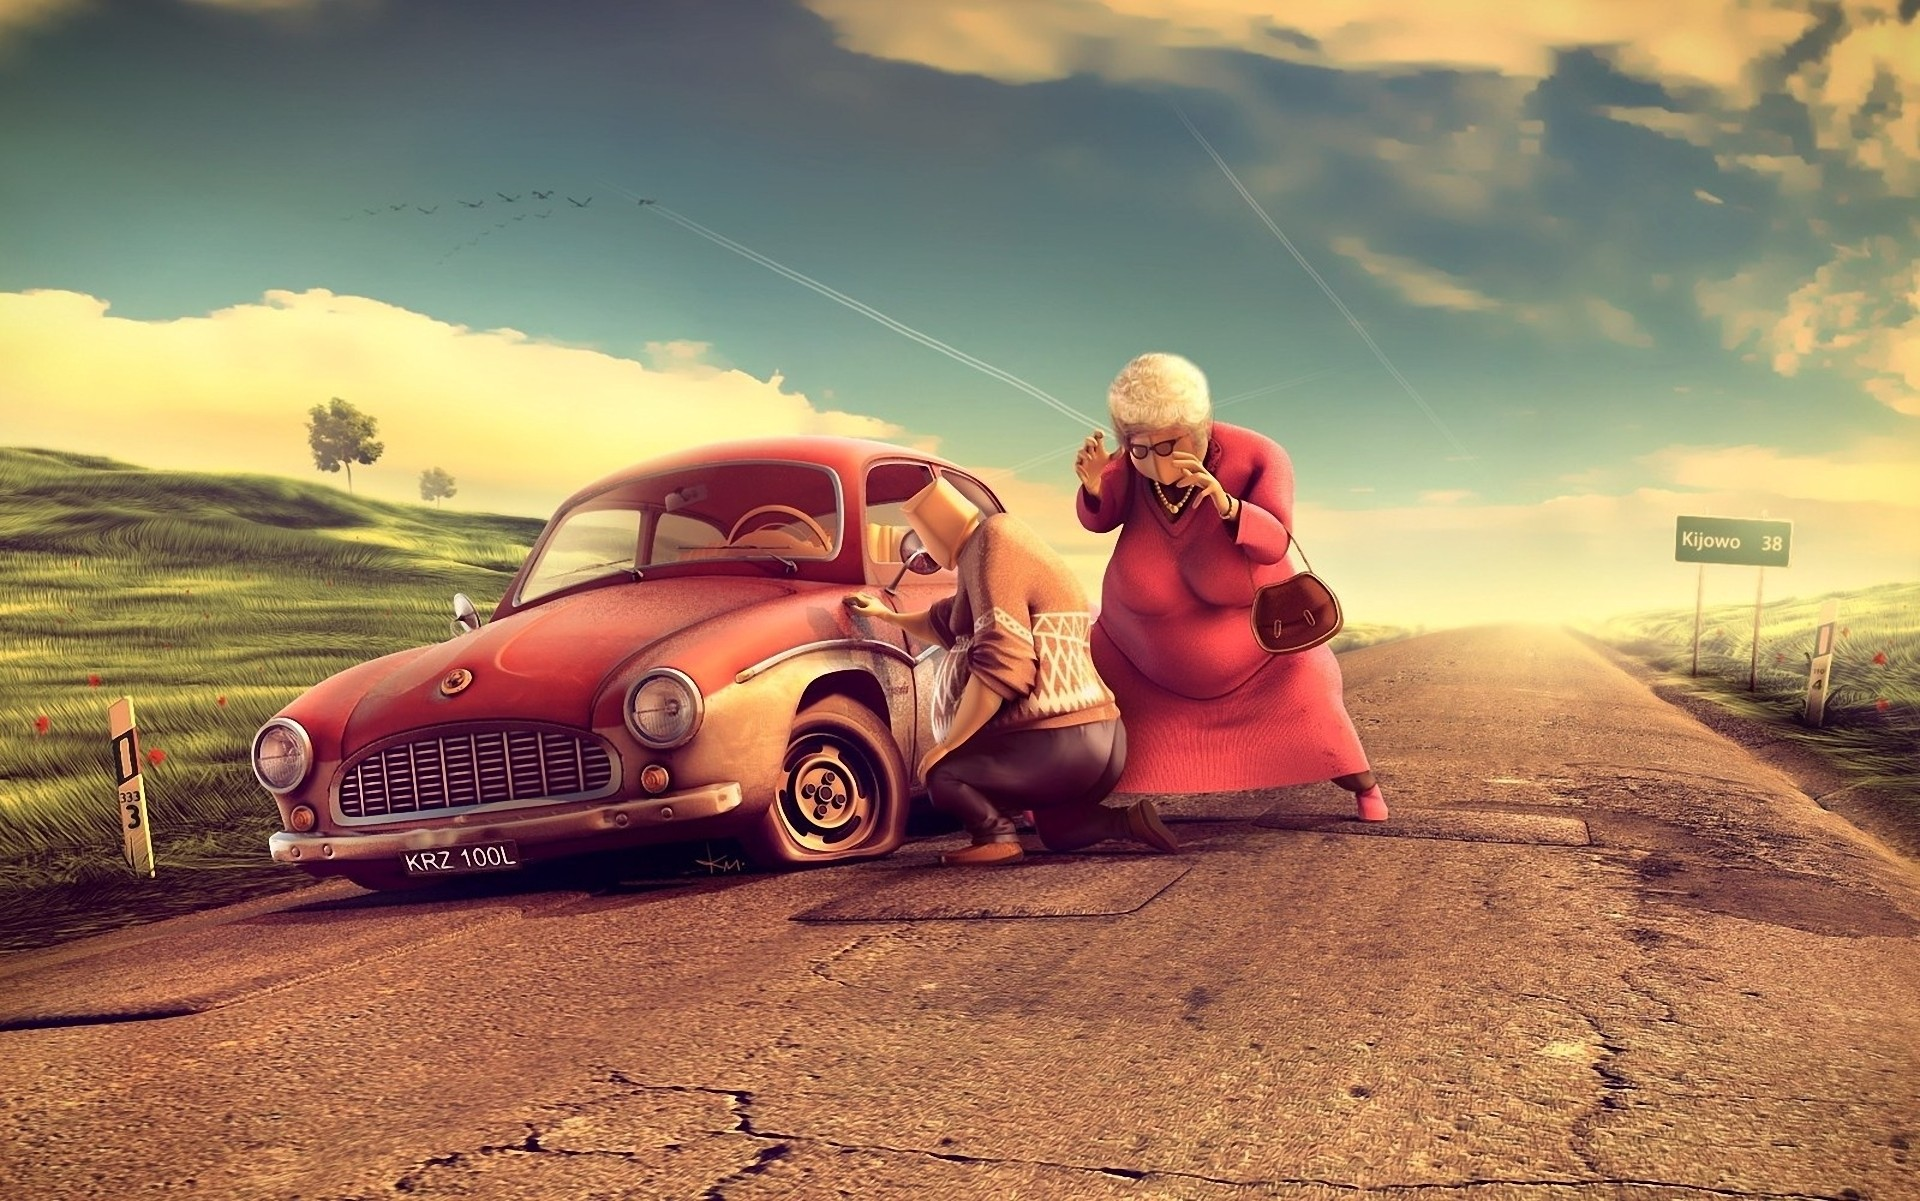 Wallpaper Cars Cartoon 62 Images